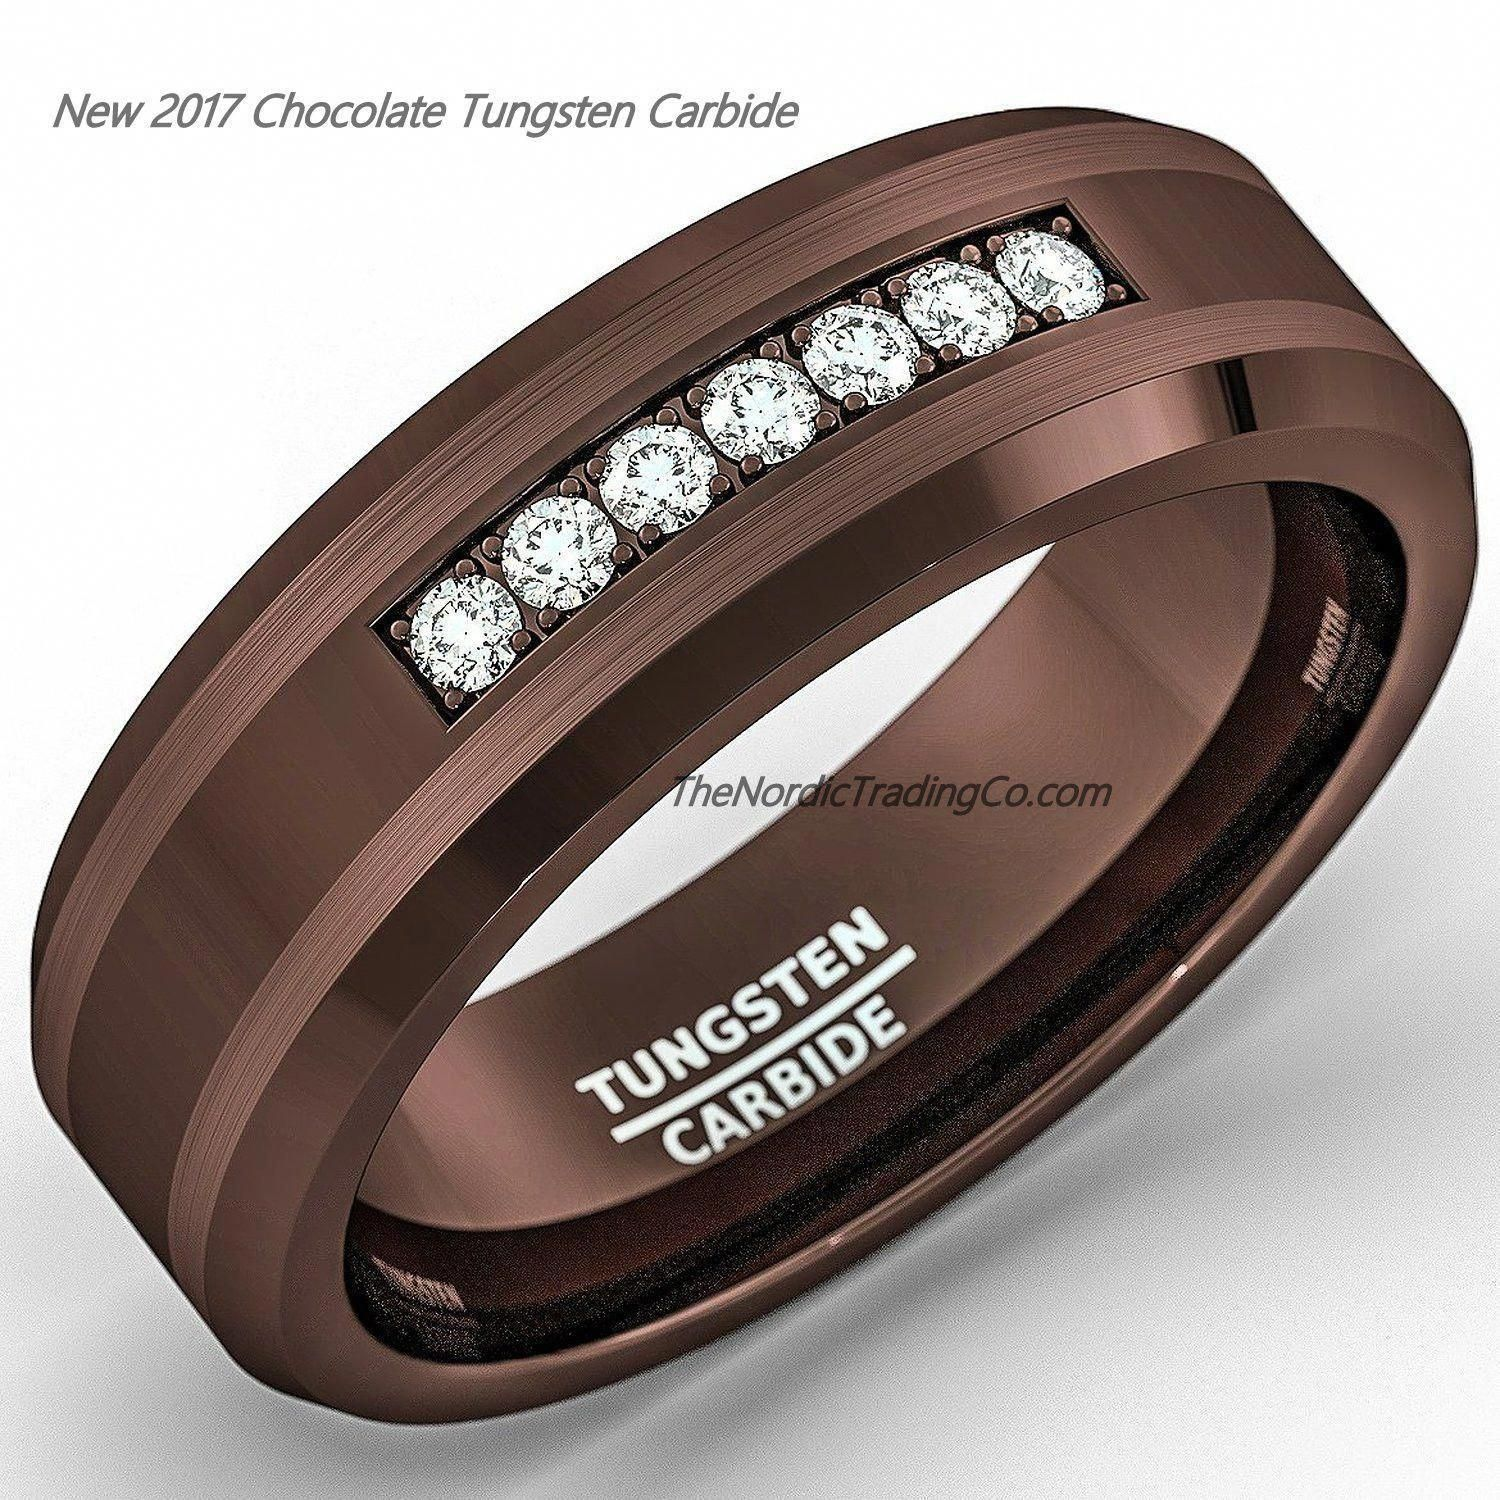 Chocolate Brown Tungsten Carbide Men S Wedding Band Engagement Ring Groom Jewelry Gifts For Men Anniversary Birt Wedding Rings Mens Wedding Rings Rings For Men